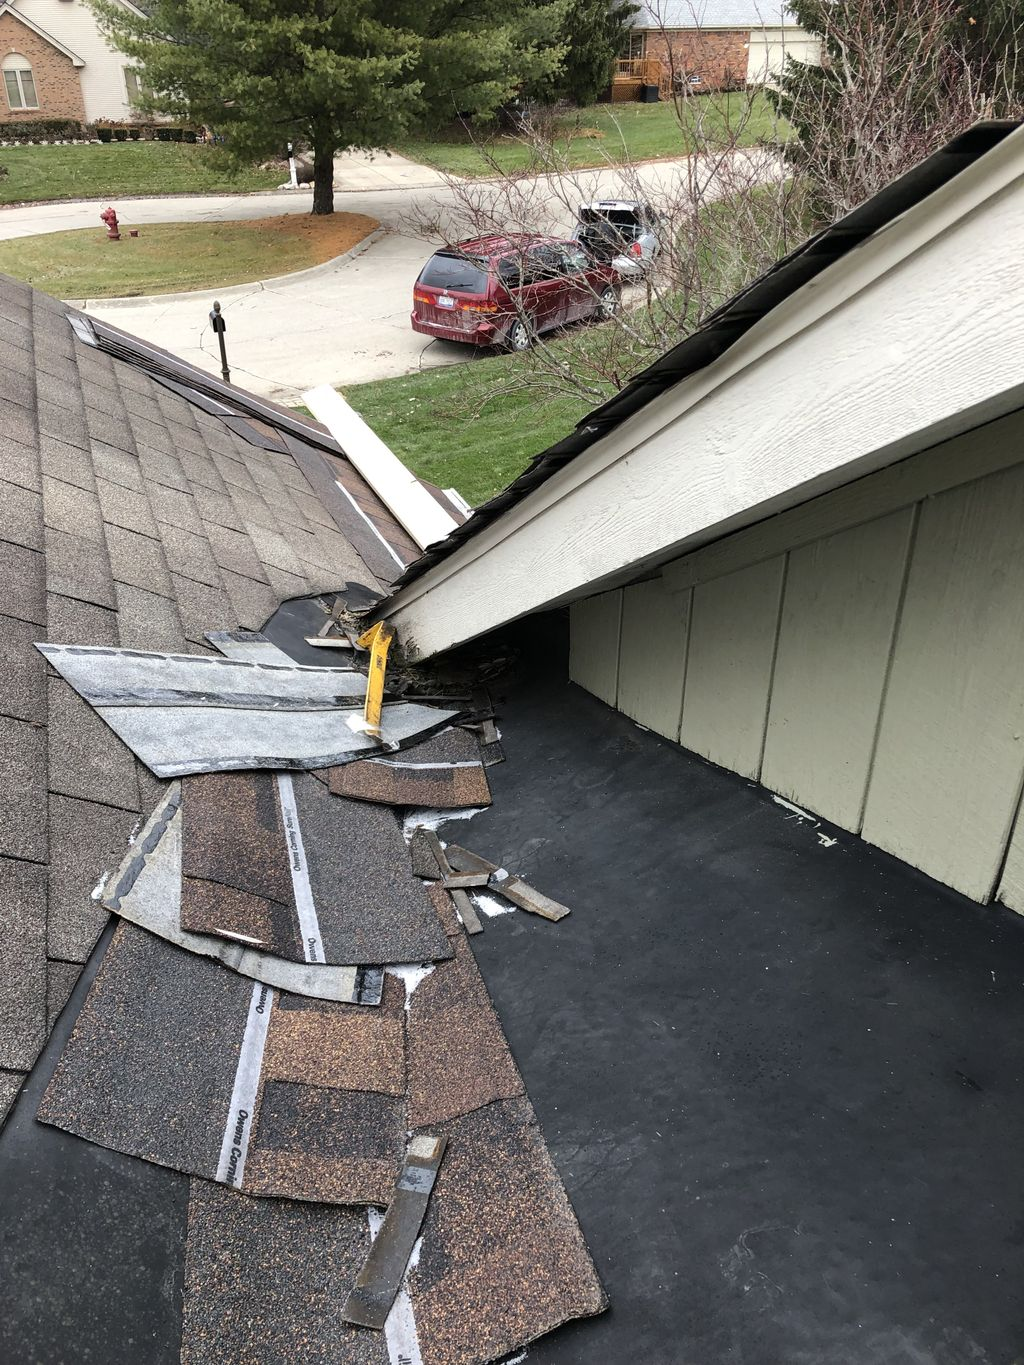 Complete reroof and flashing